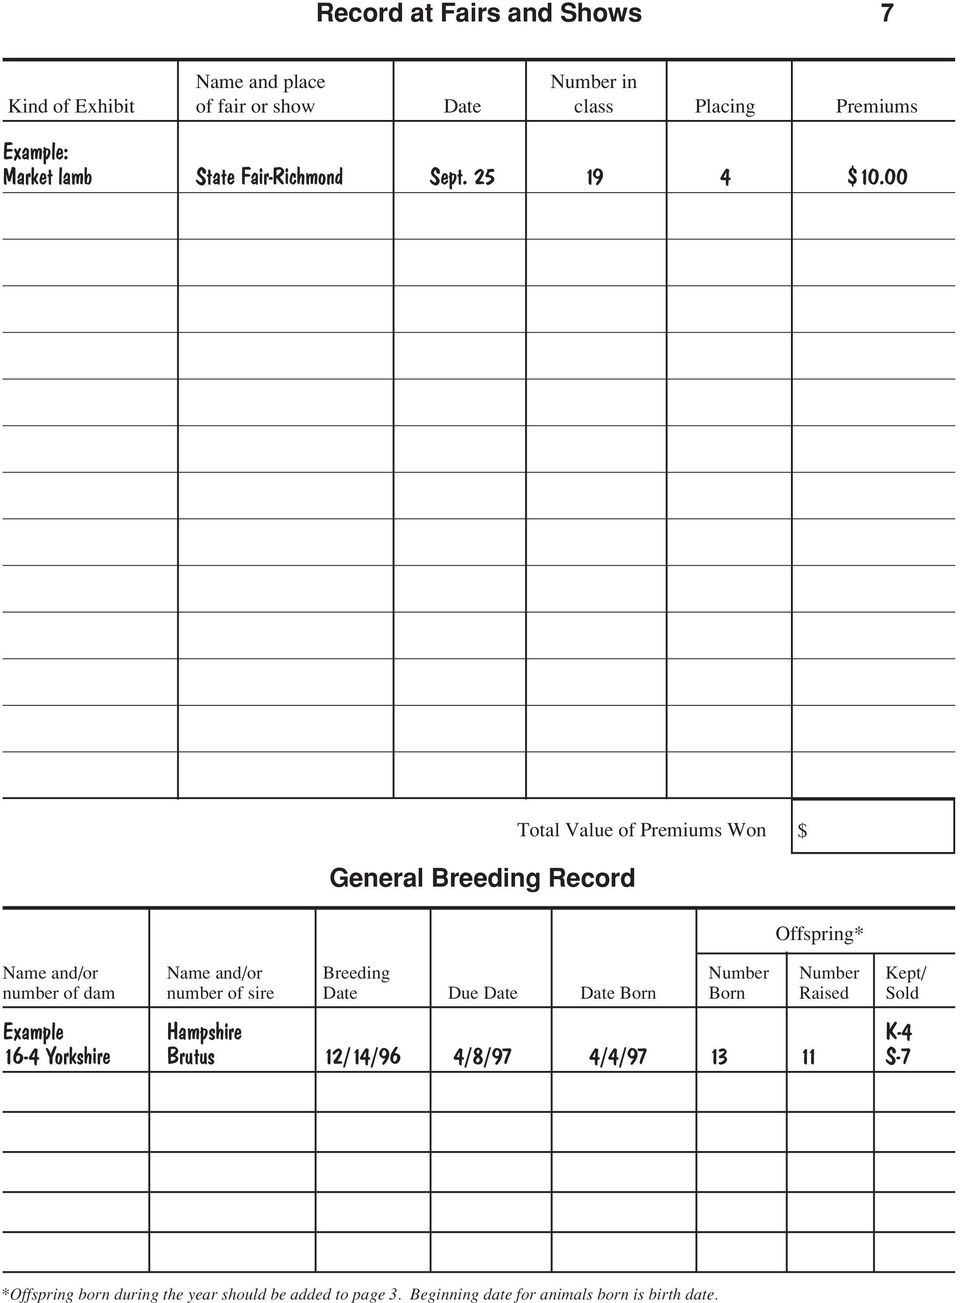 00 General Breeding Record Total Value of Premiums Won $ Offspring* Name and/or Name and/or Breeding Number Number Kept/ number of dam